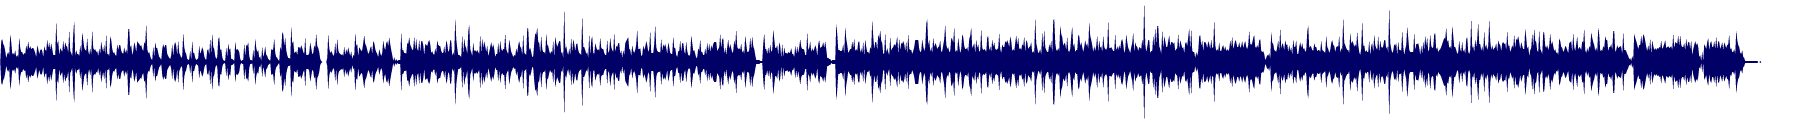 waveform of track #70507